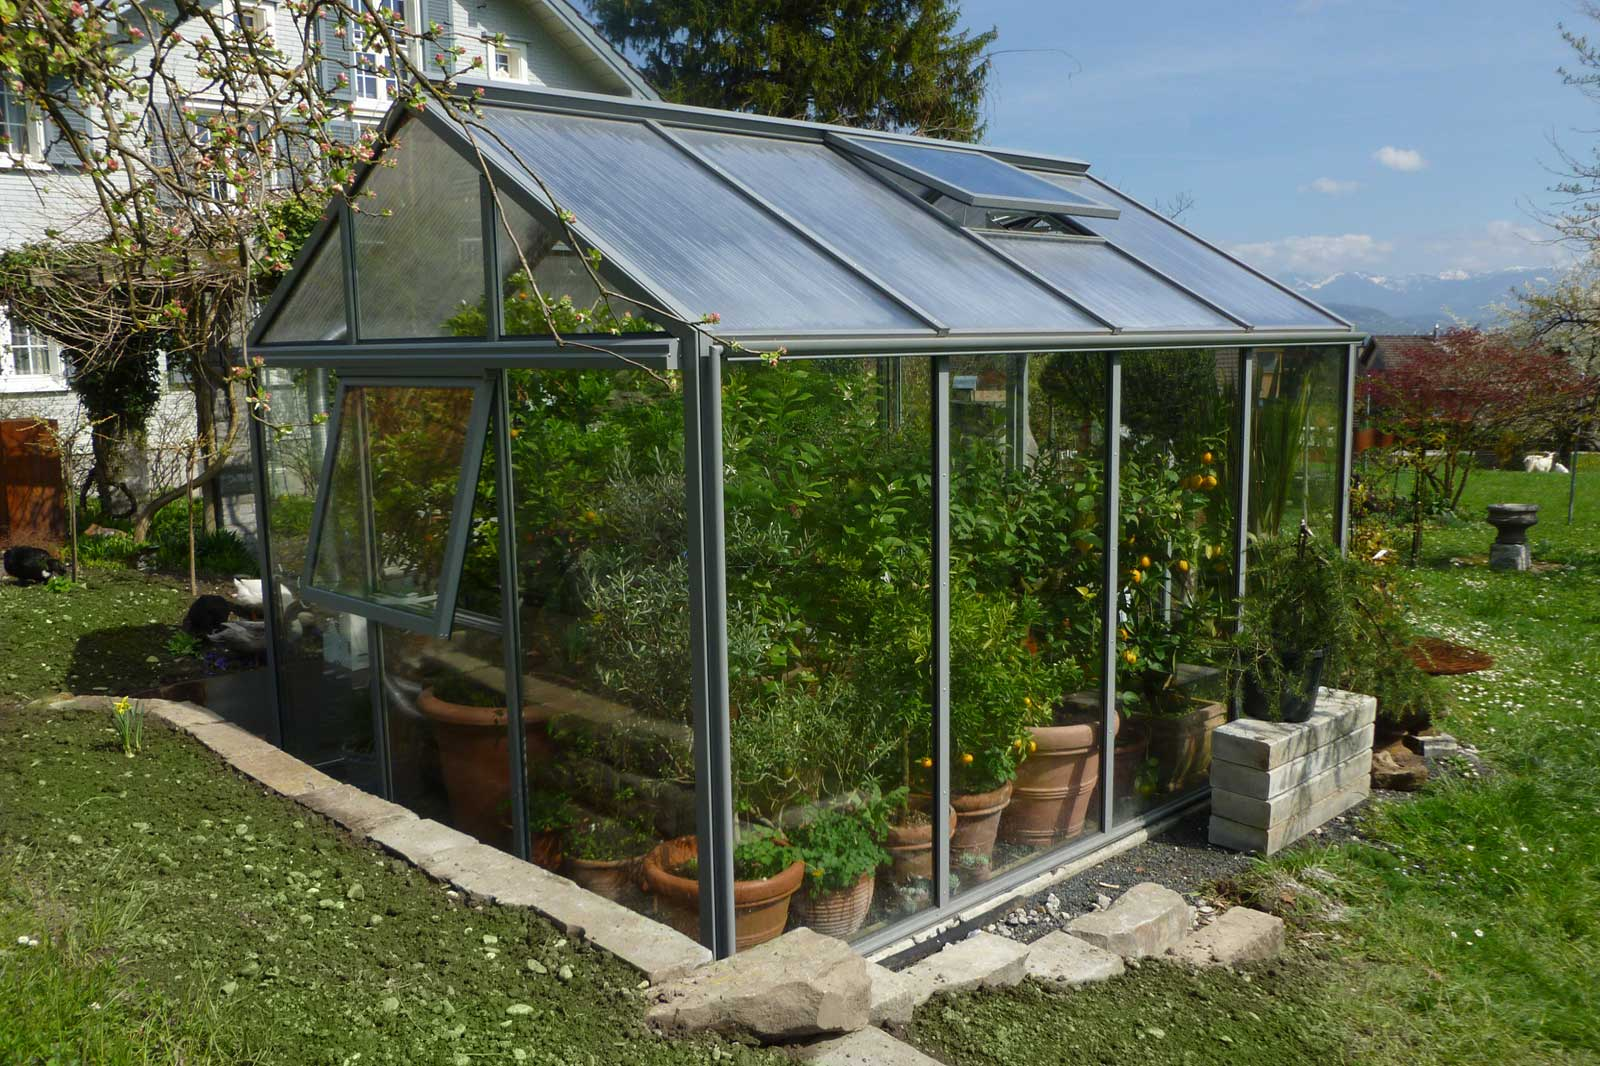 Greenhouse made to measure by Frei Gewächshäuser, Switzerland